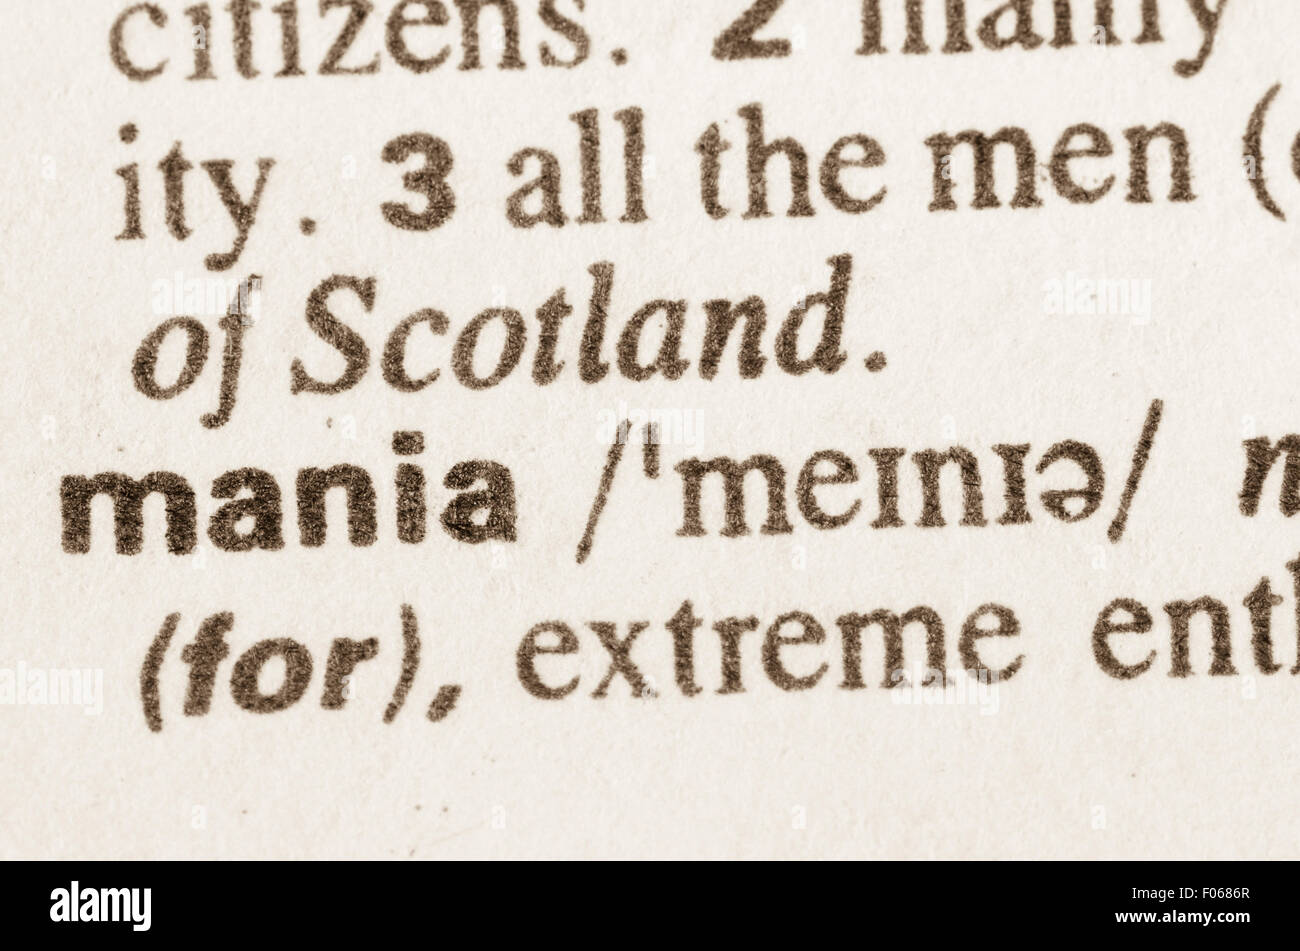 definition word mania in dictionary stock photos & definition word